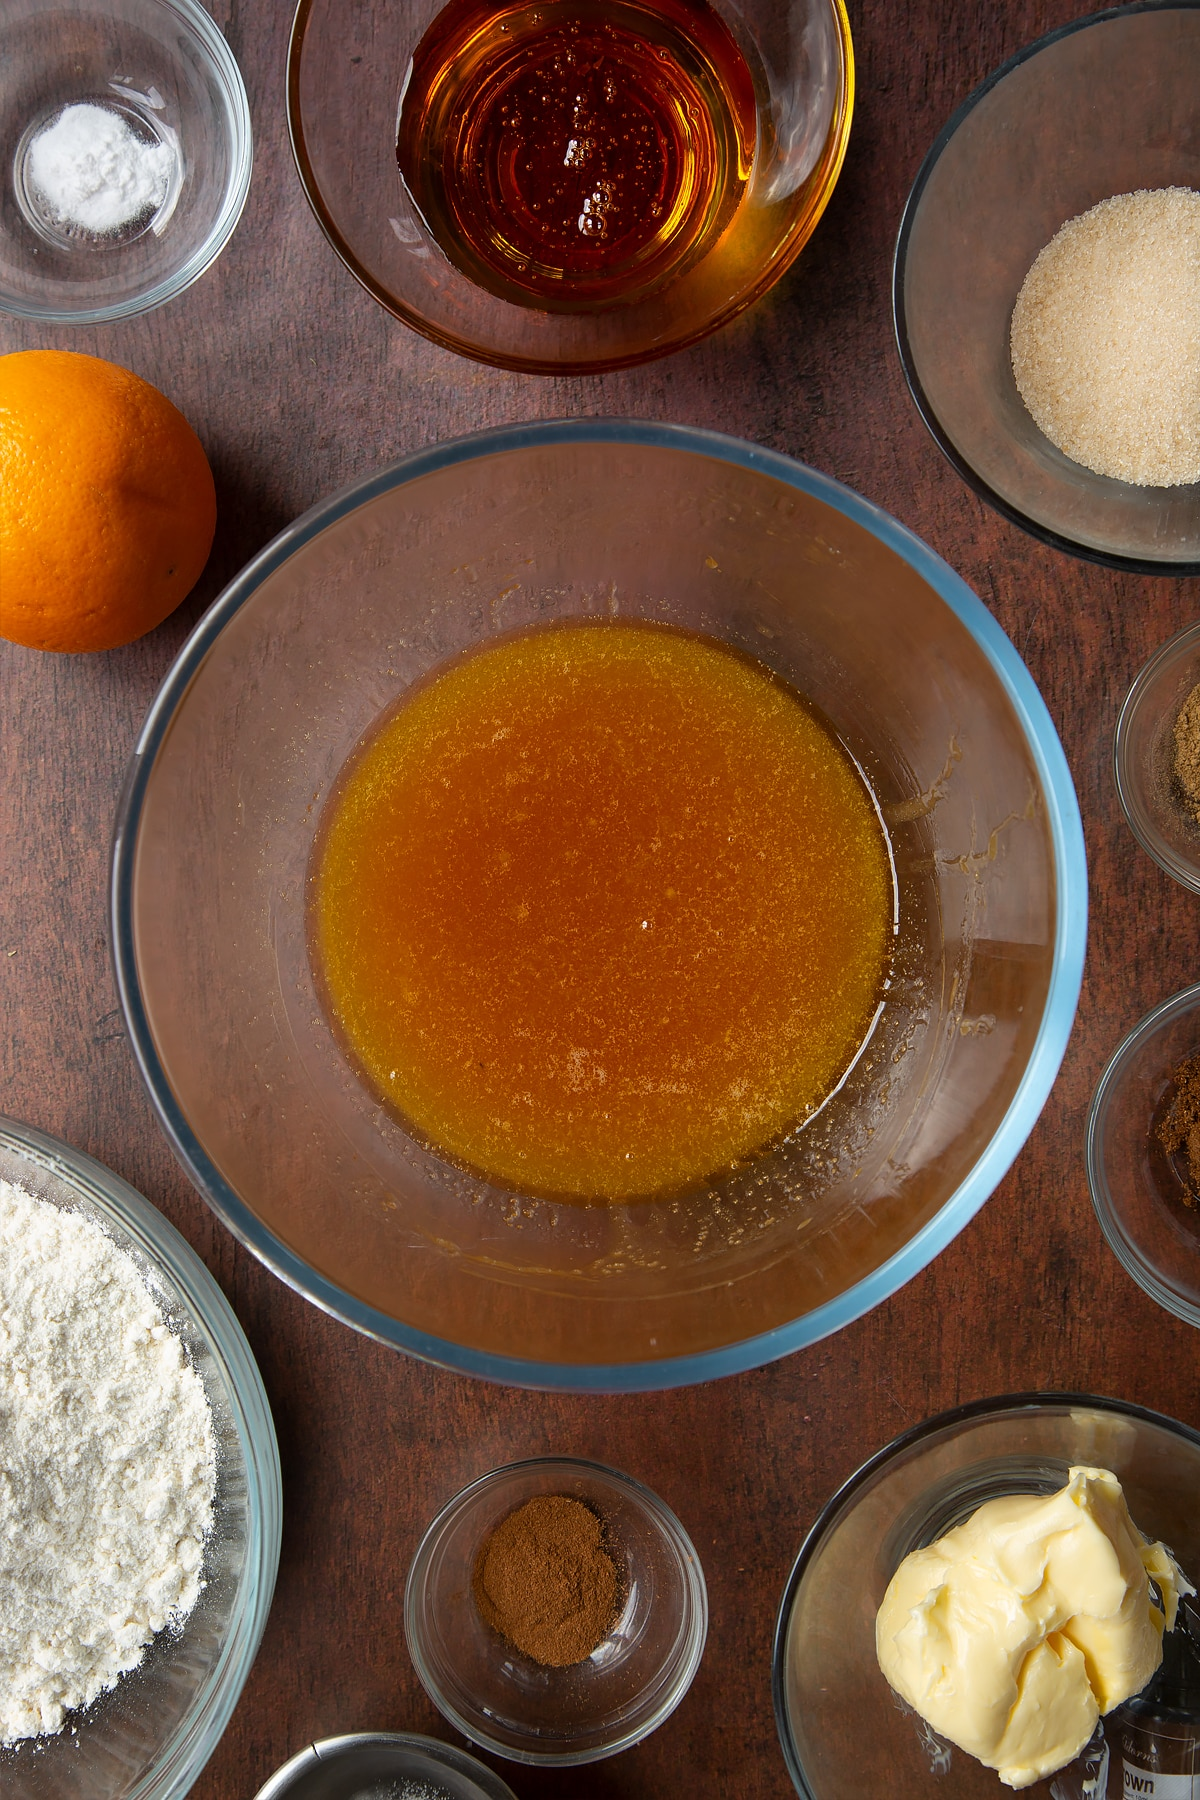 Melted butter, sugar and golden syrup in a bowl. Ingredients to make autumn cookies surround the bowl.